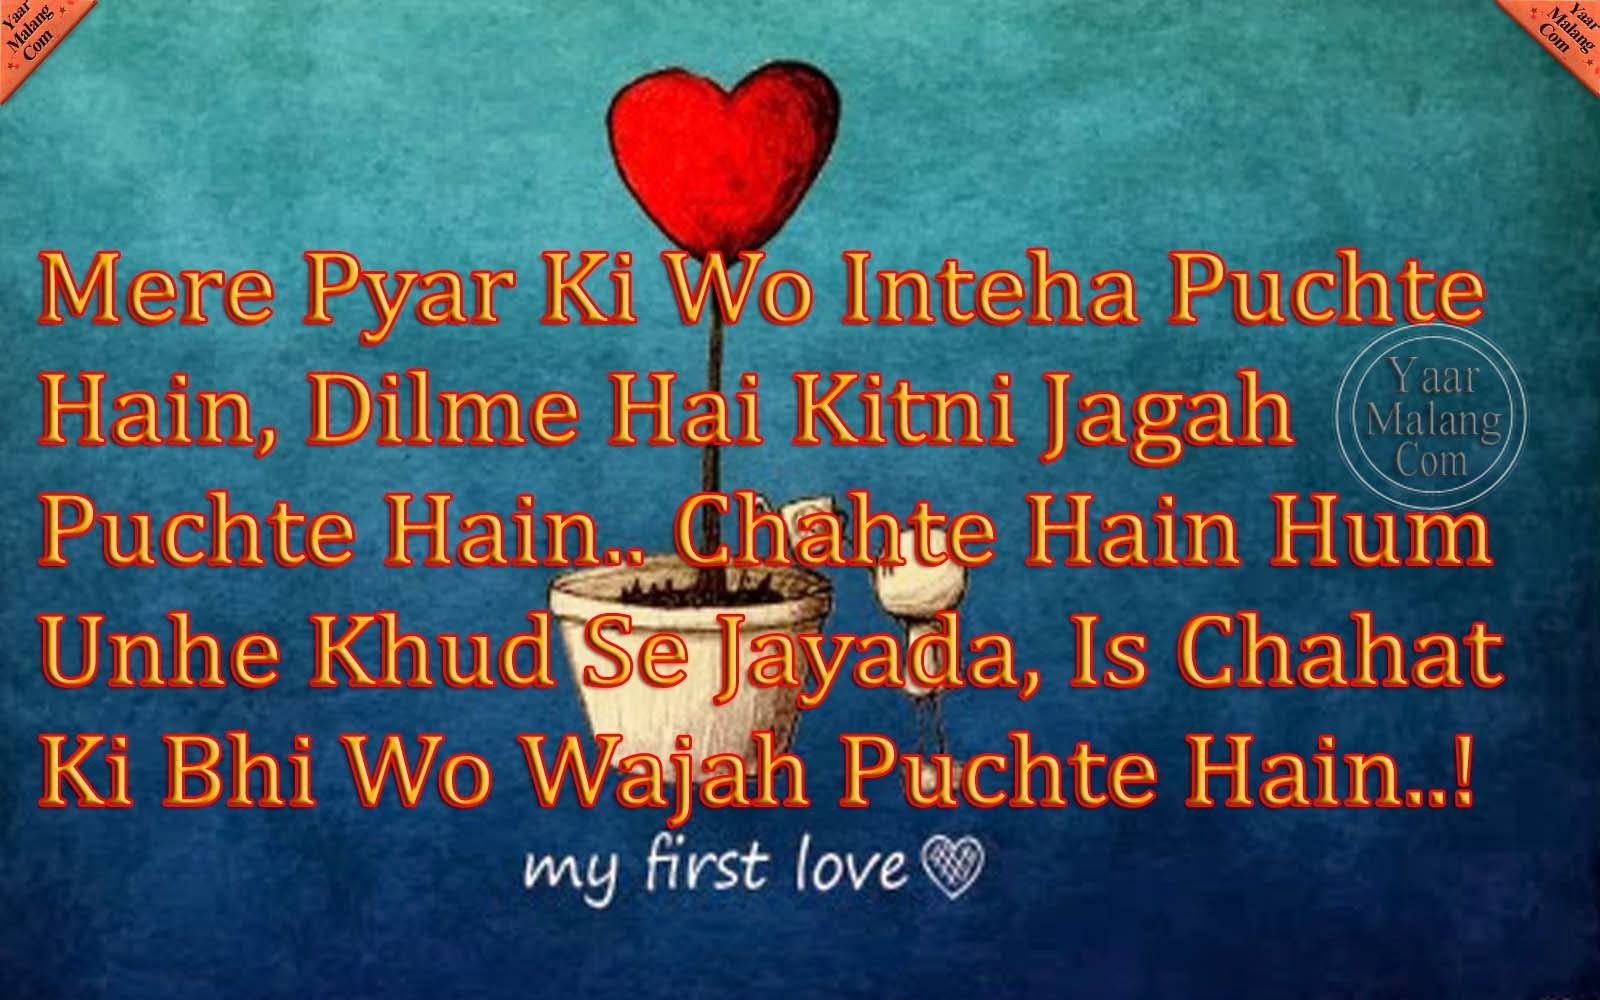 Love Quotes For Facebook Status In Hindi Wnjqfcbja In Love Quotes